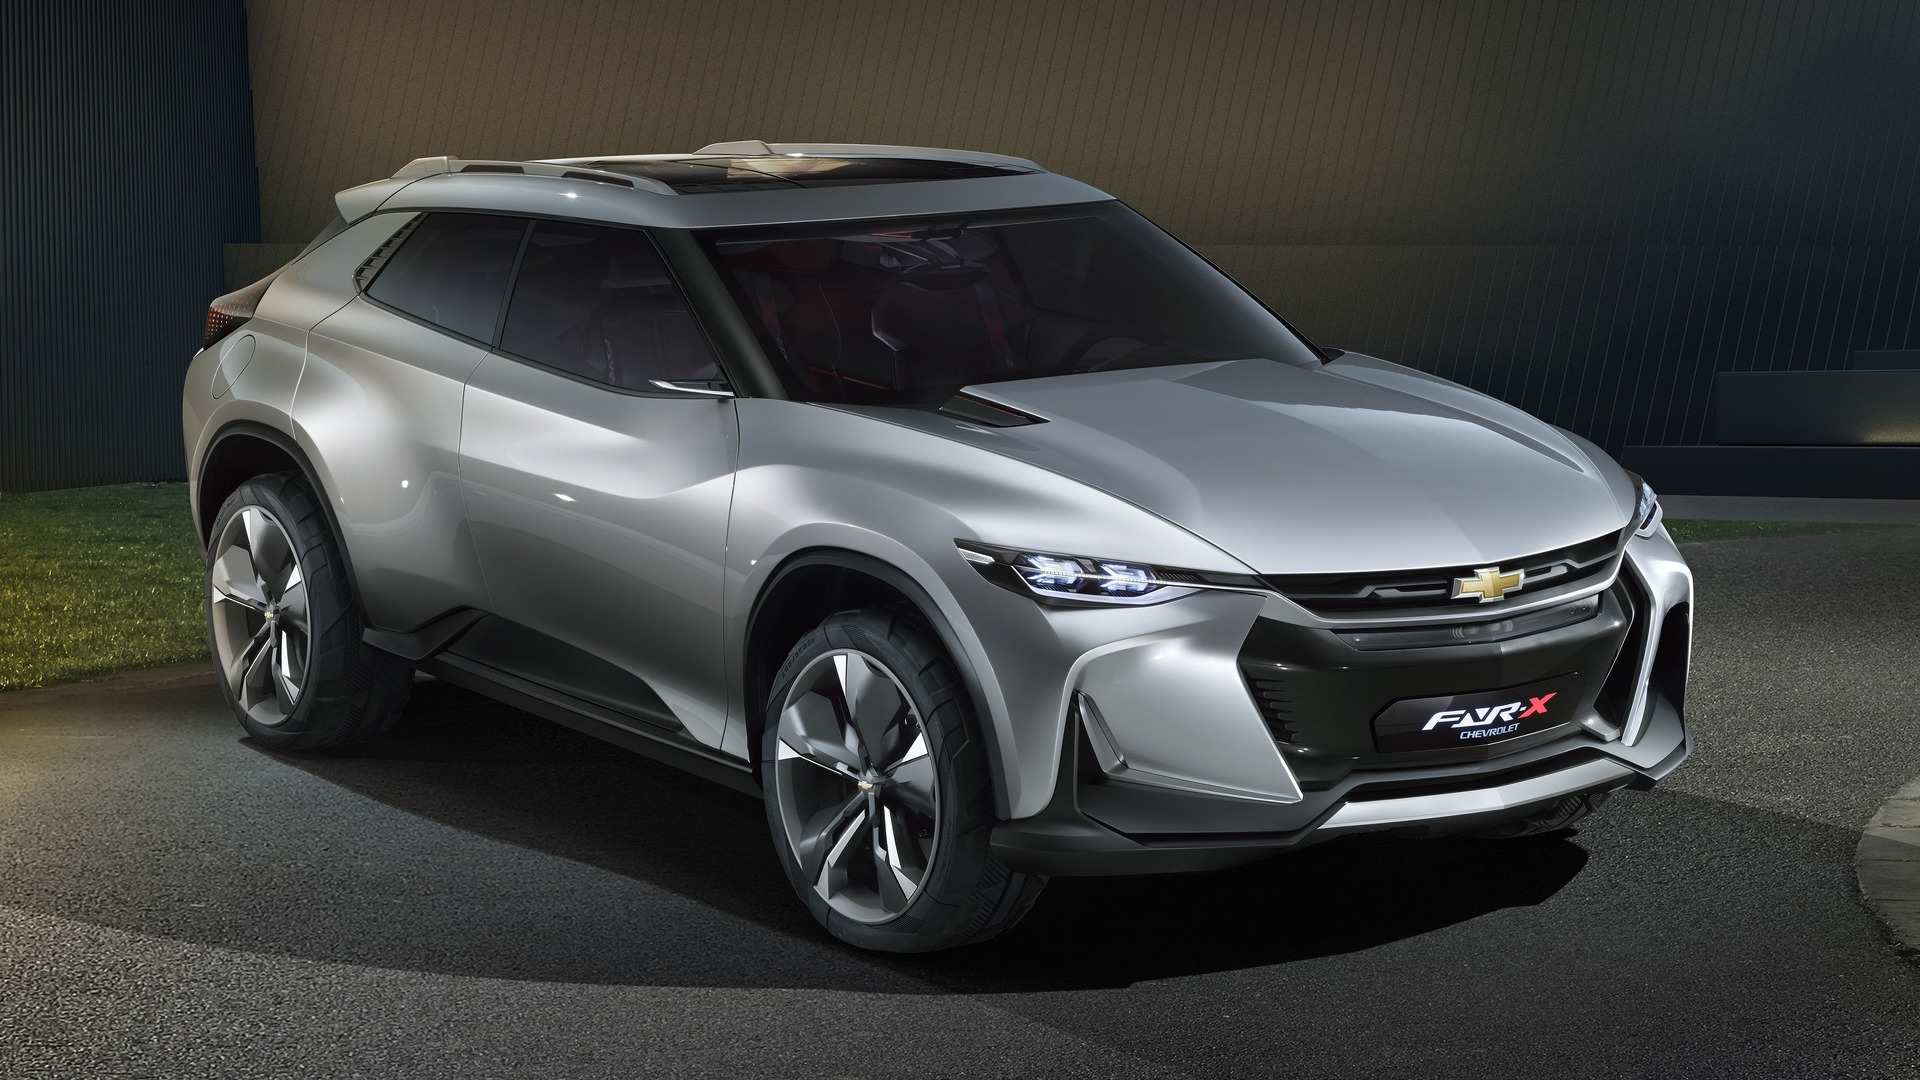 30 All New The Chevrolet Fnr X 2019 Performance And New Engine New Concept by The Chevrolet Fnr X 2019 Performance And New Engine